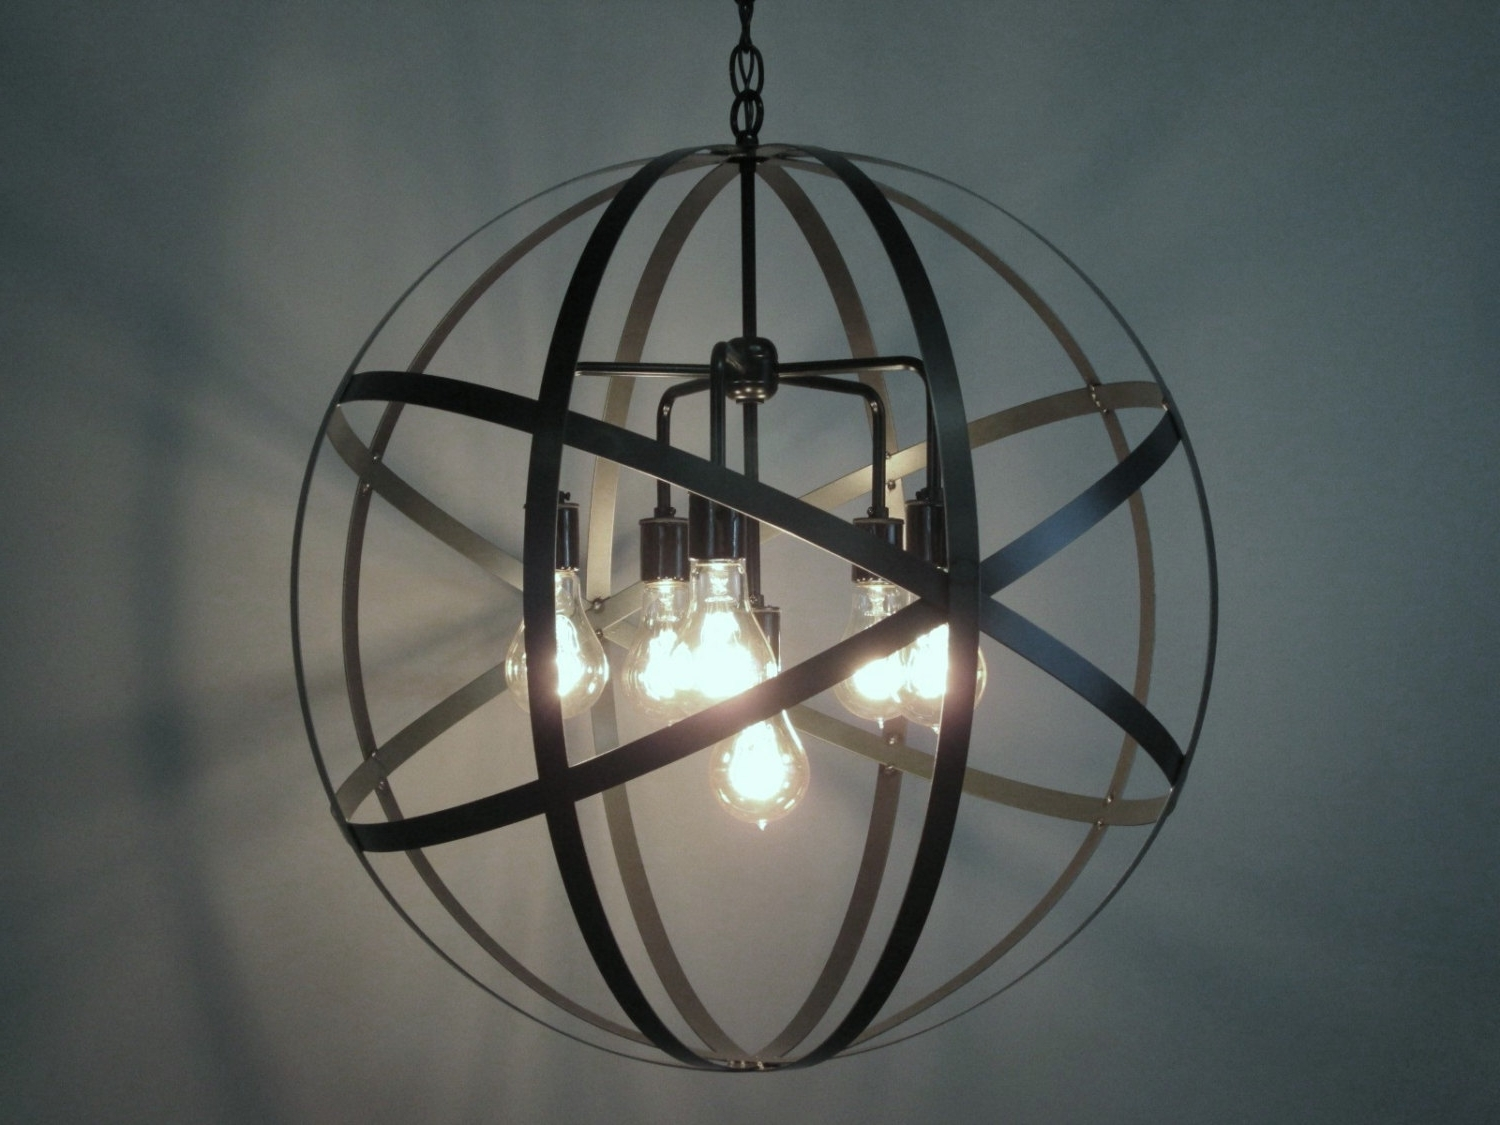 Trendy Decor: Crystal Sphere Chandelier And Large Globe Chandelier Also With Regard To Large Globe Chandelier (View 4 of 15)